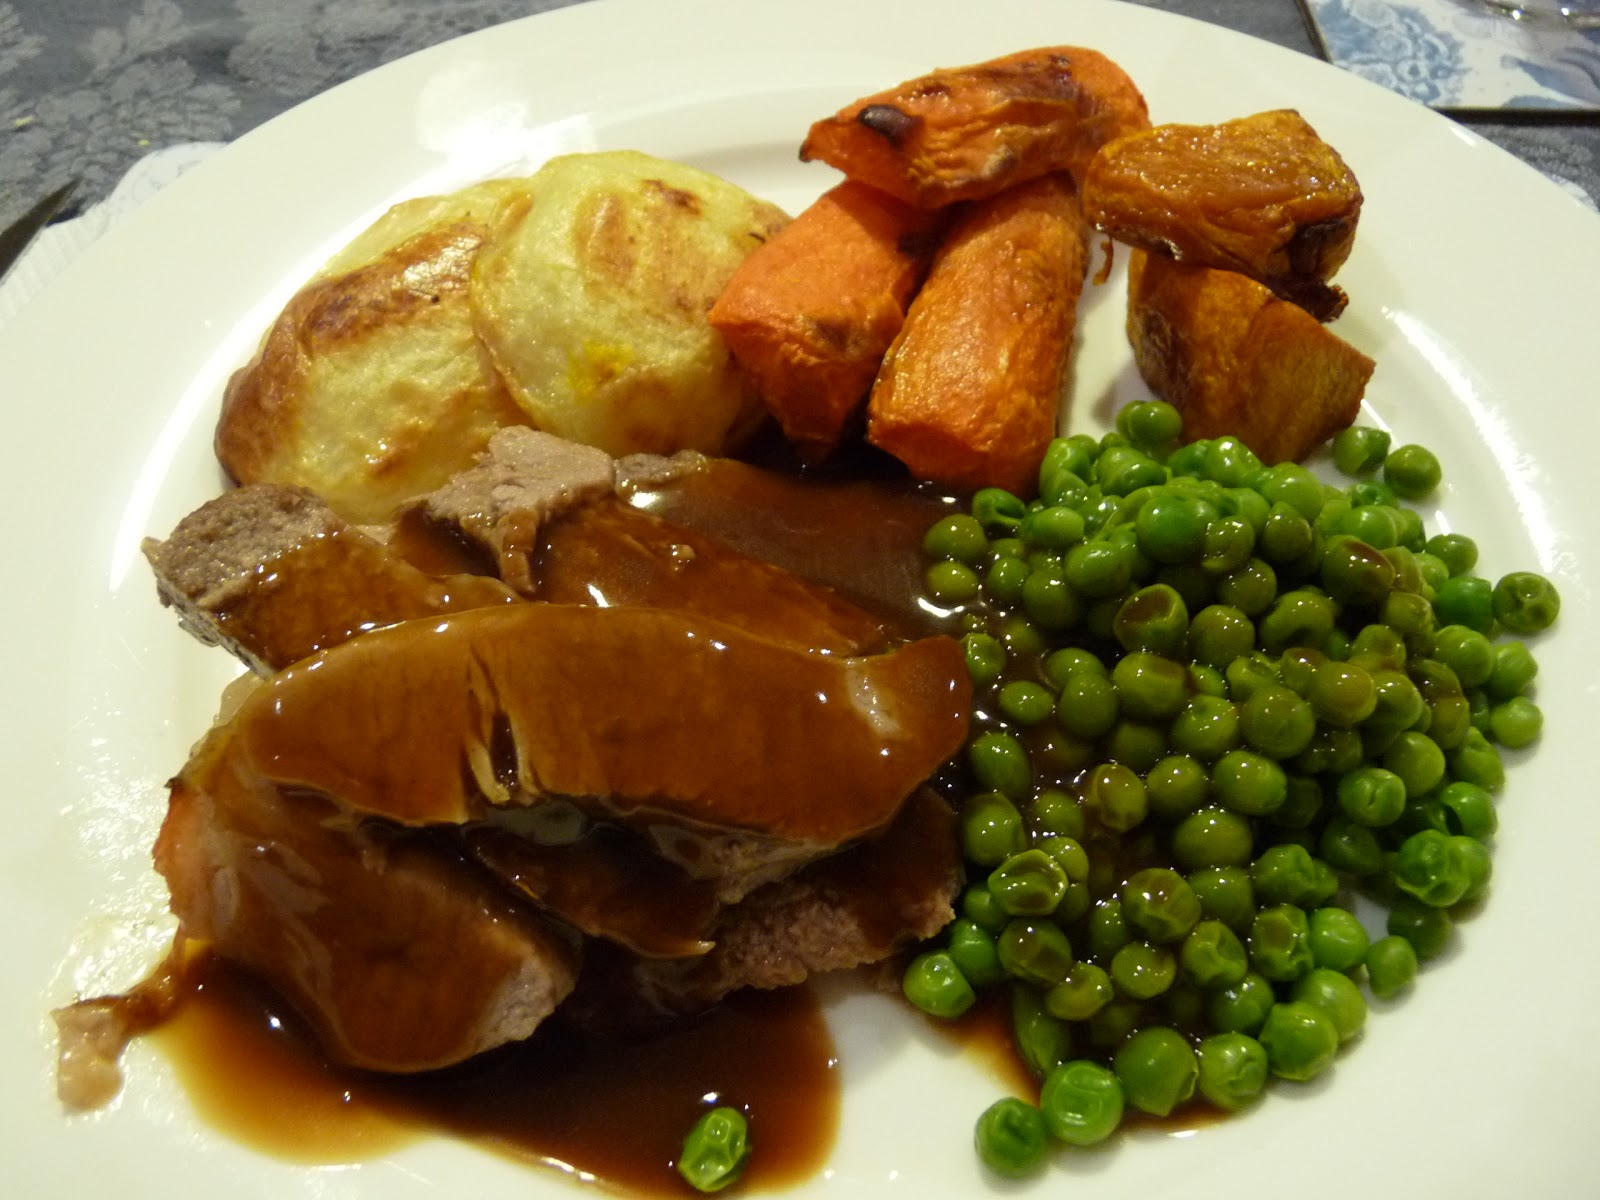 Other meals this week included - Monday: Roast lamb and vegetables ...